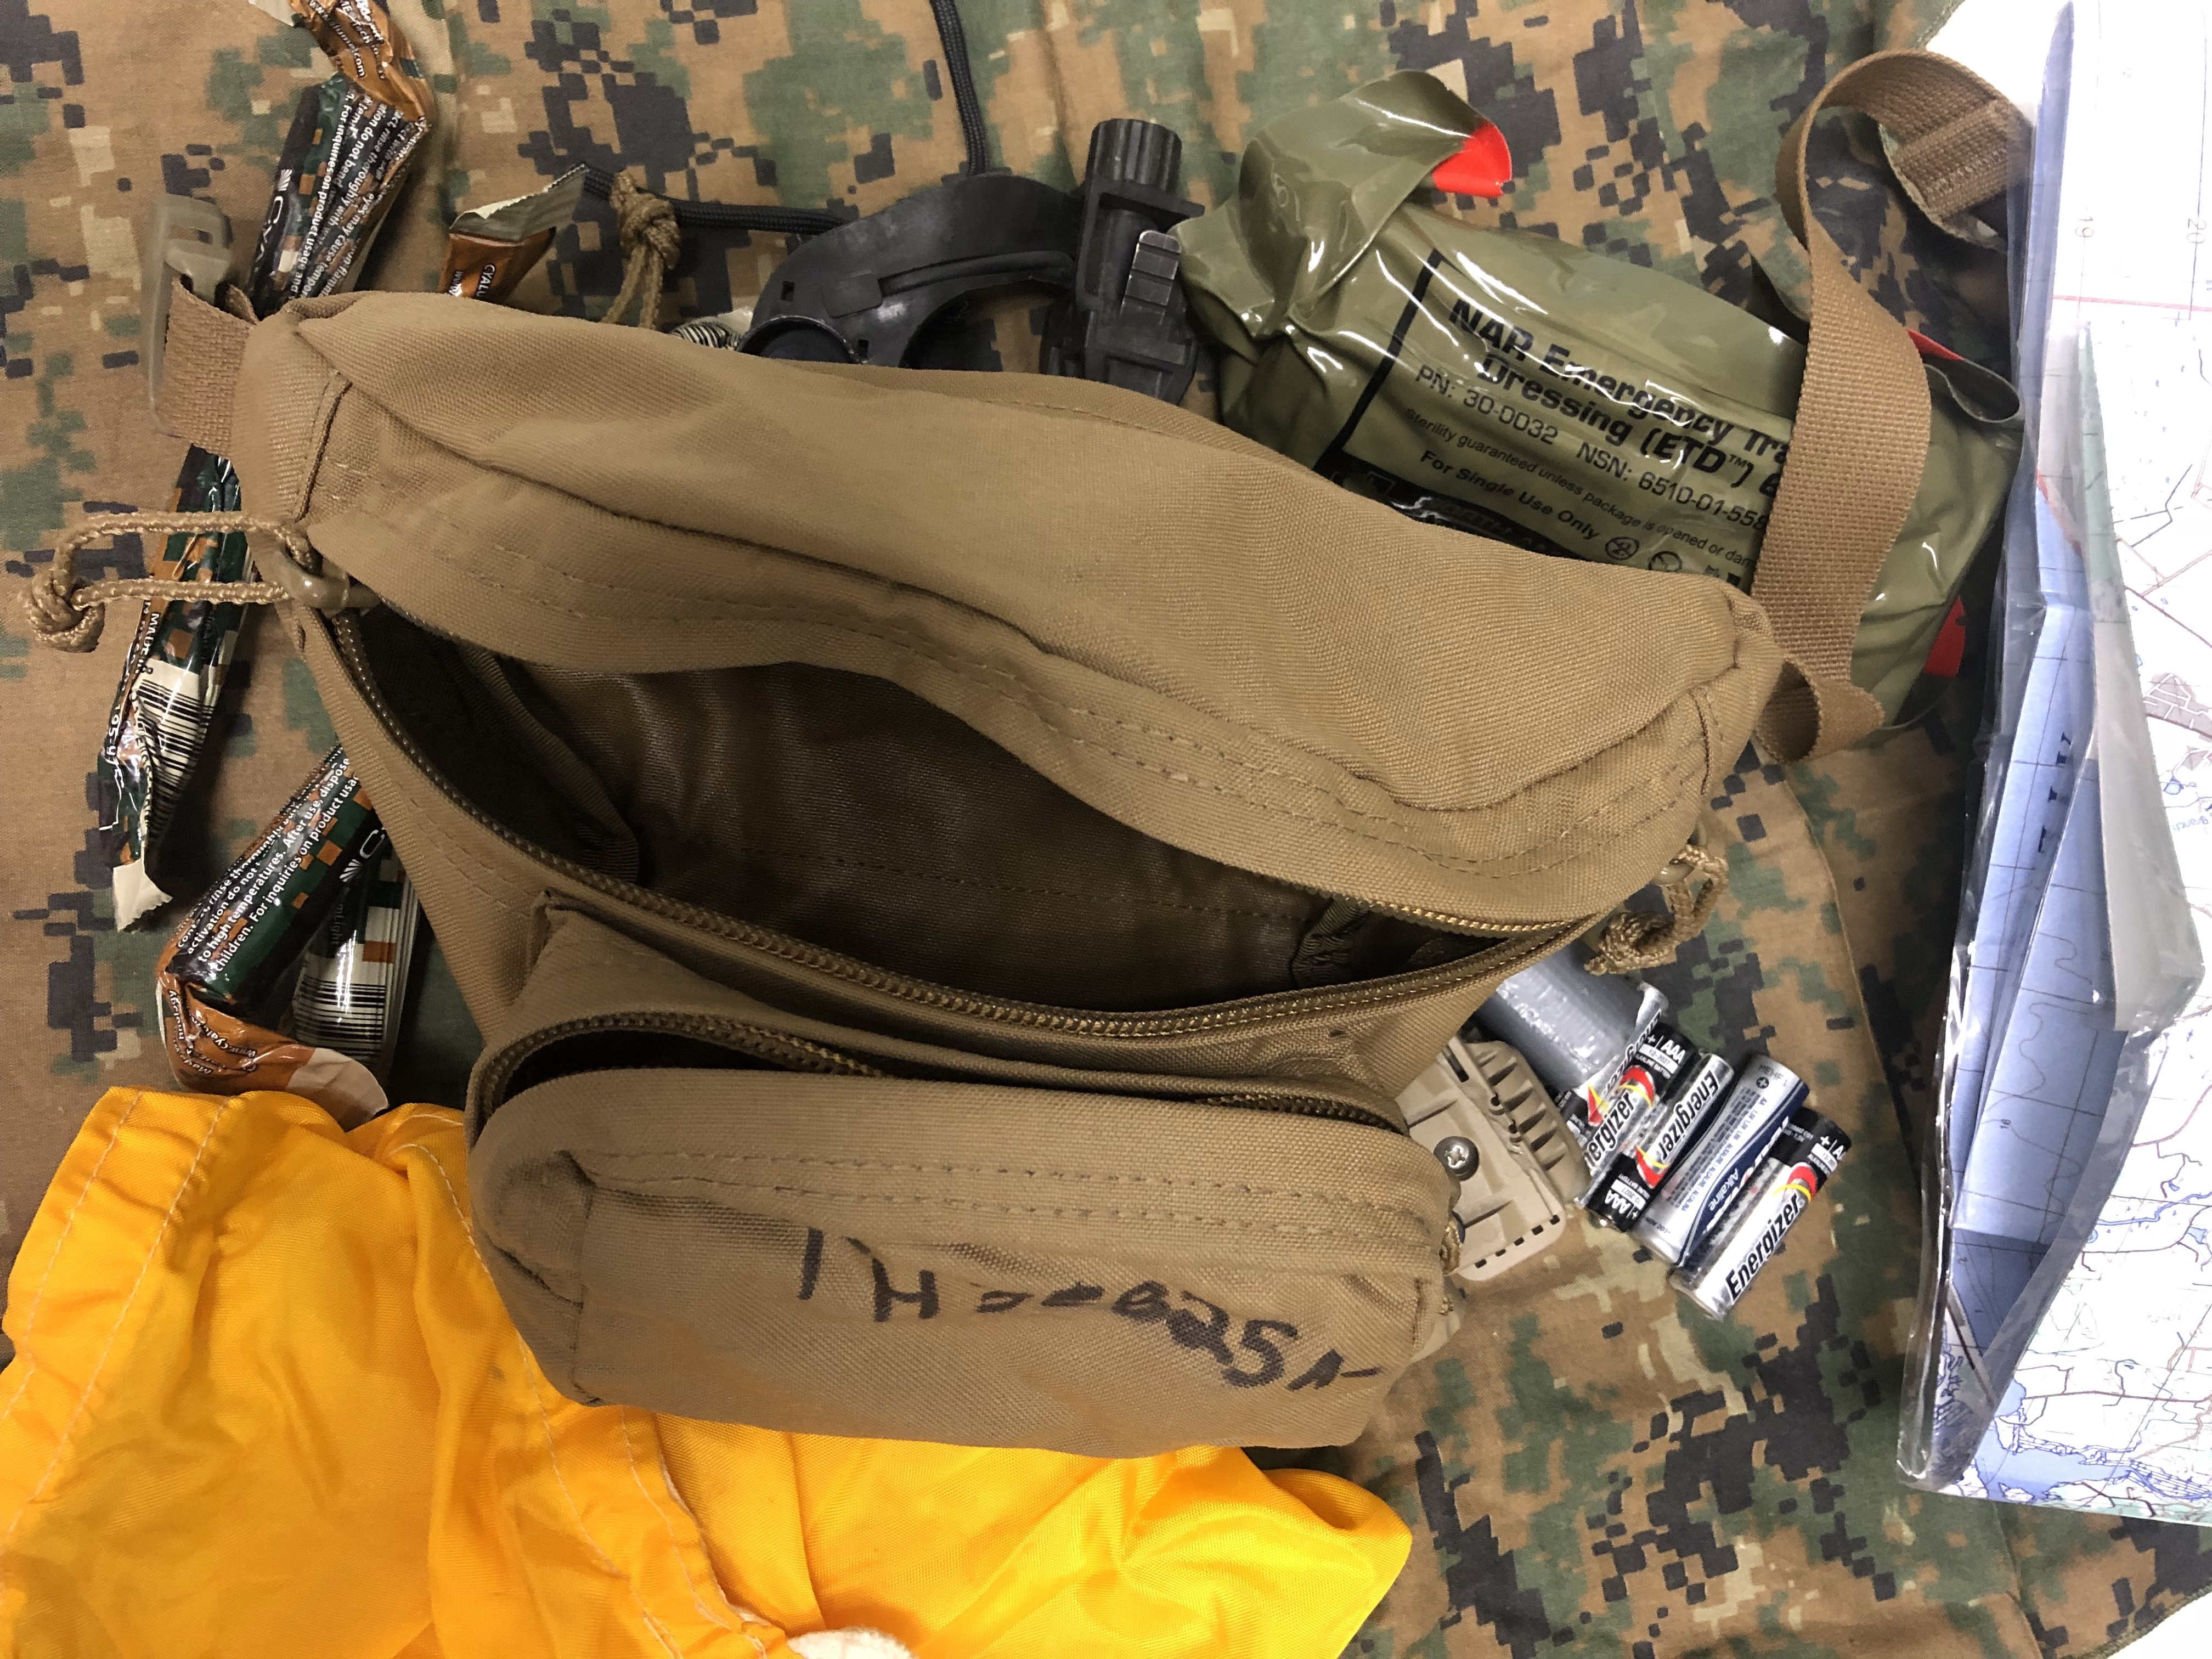 d96e605b0ee4 I was pleased to discover the T3 fanny pack fits through standard belt  loops and was very comfortable. The waist strap also held its adjustment  well as I ...